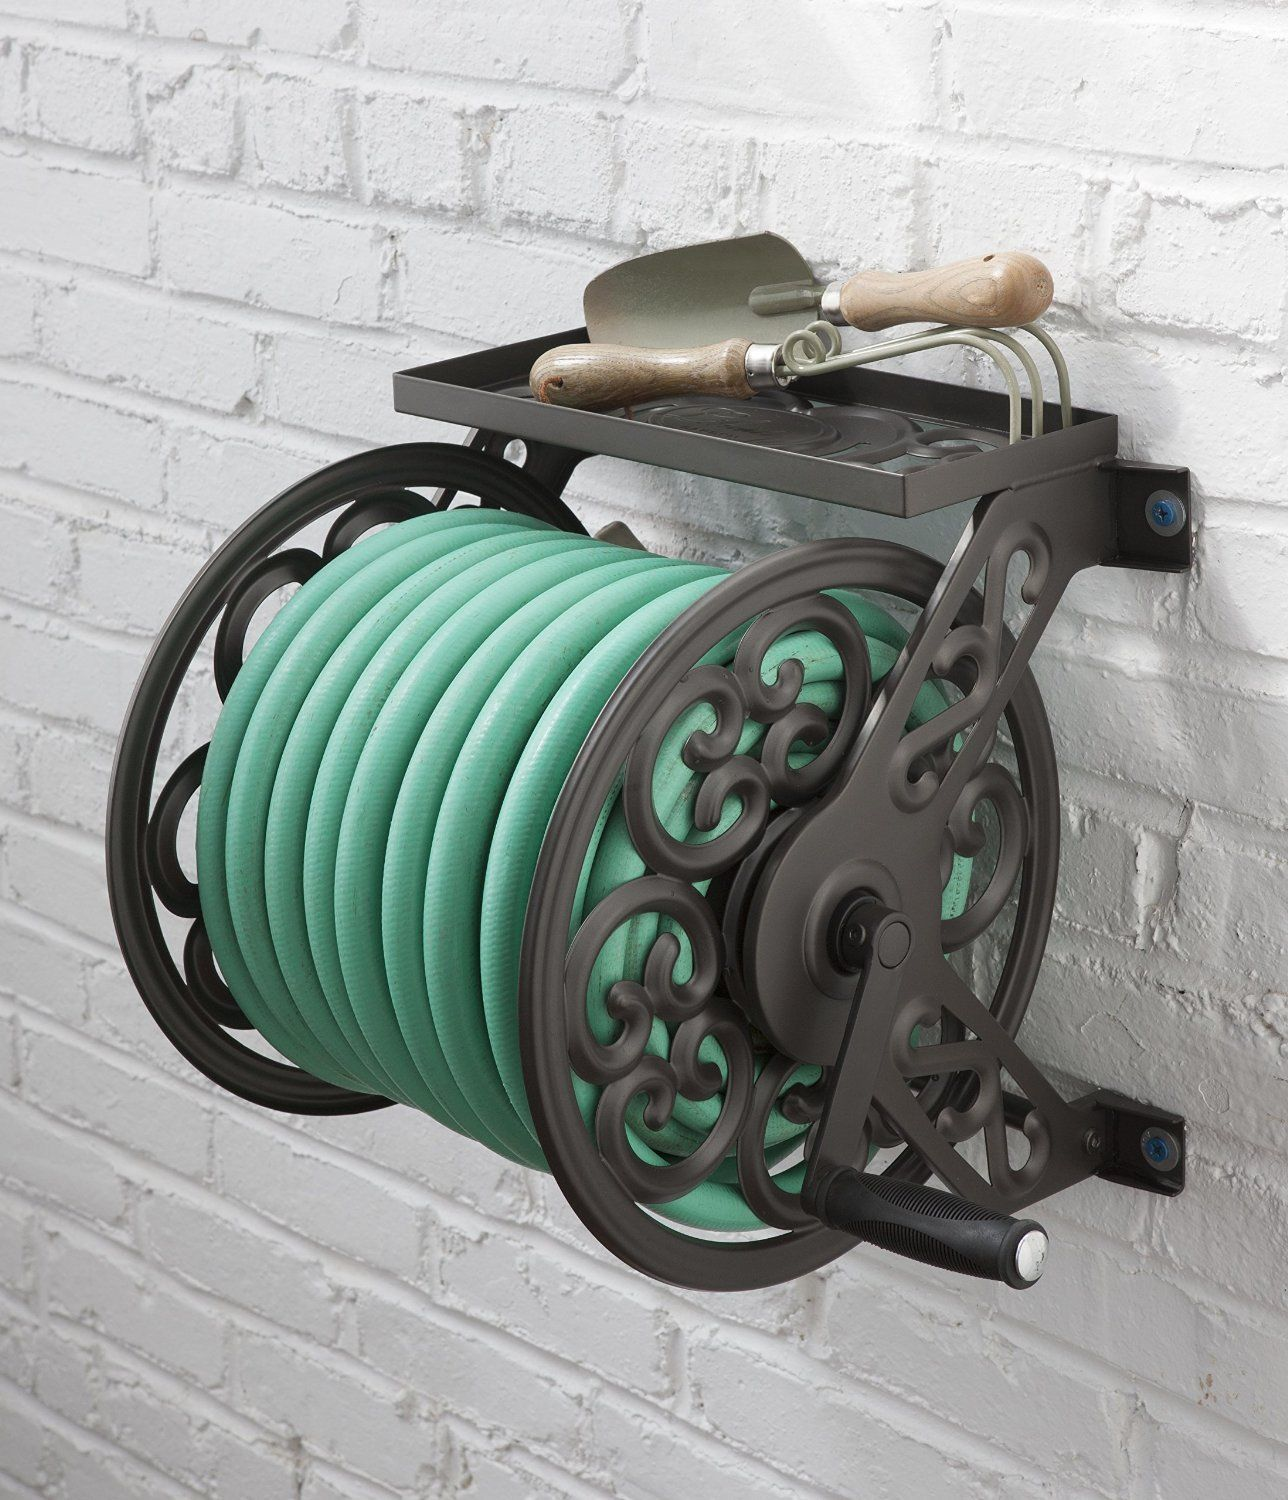 Ordinaire Liberty Garden Wall Mount Steel Decorative Hose Reel Garden Bronze With  Shelf